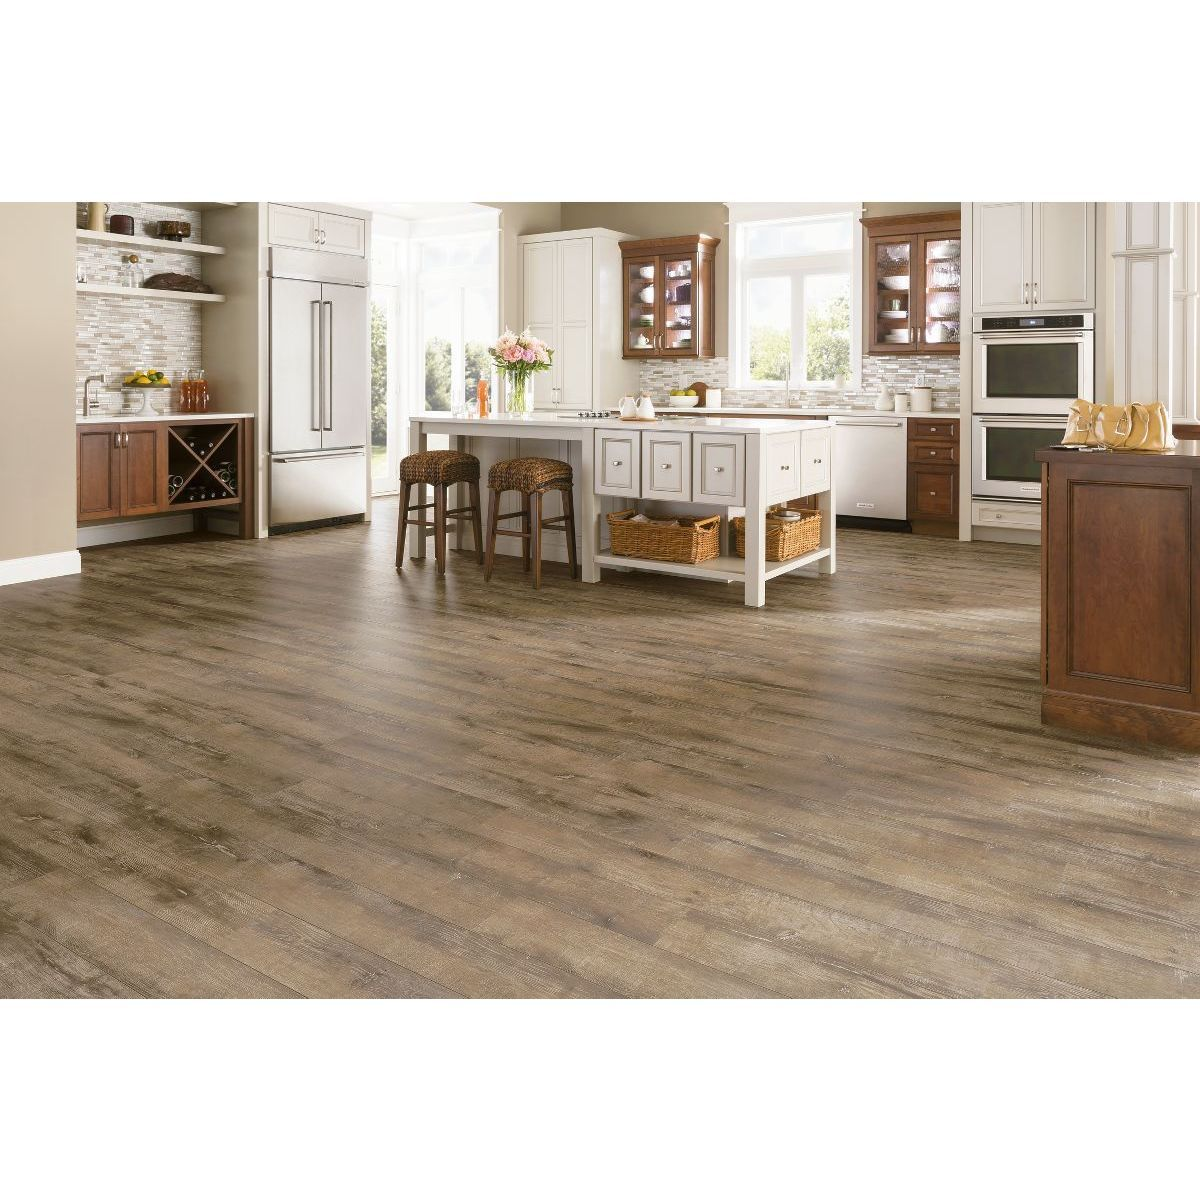 Armstrong Rustics Premium Laminate 15 11 Square Foot Flooring Pack Etched Light Brown